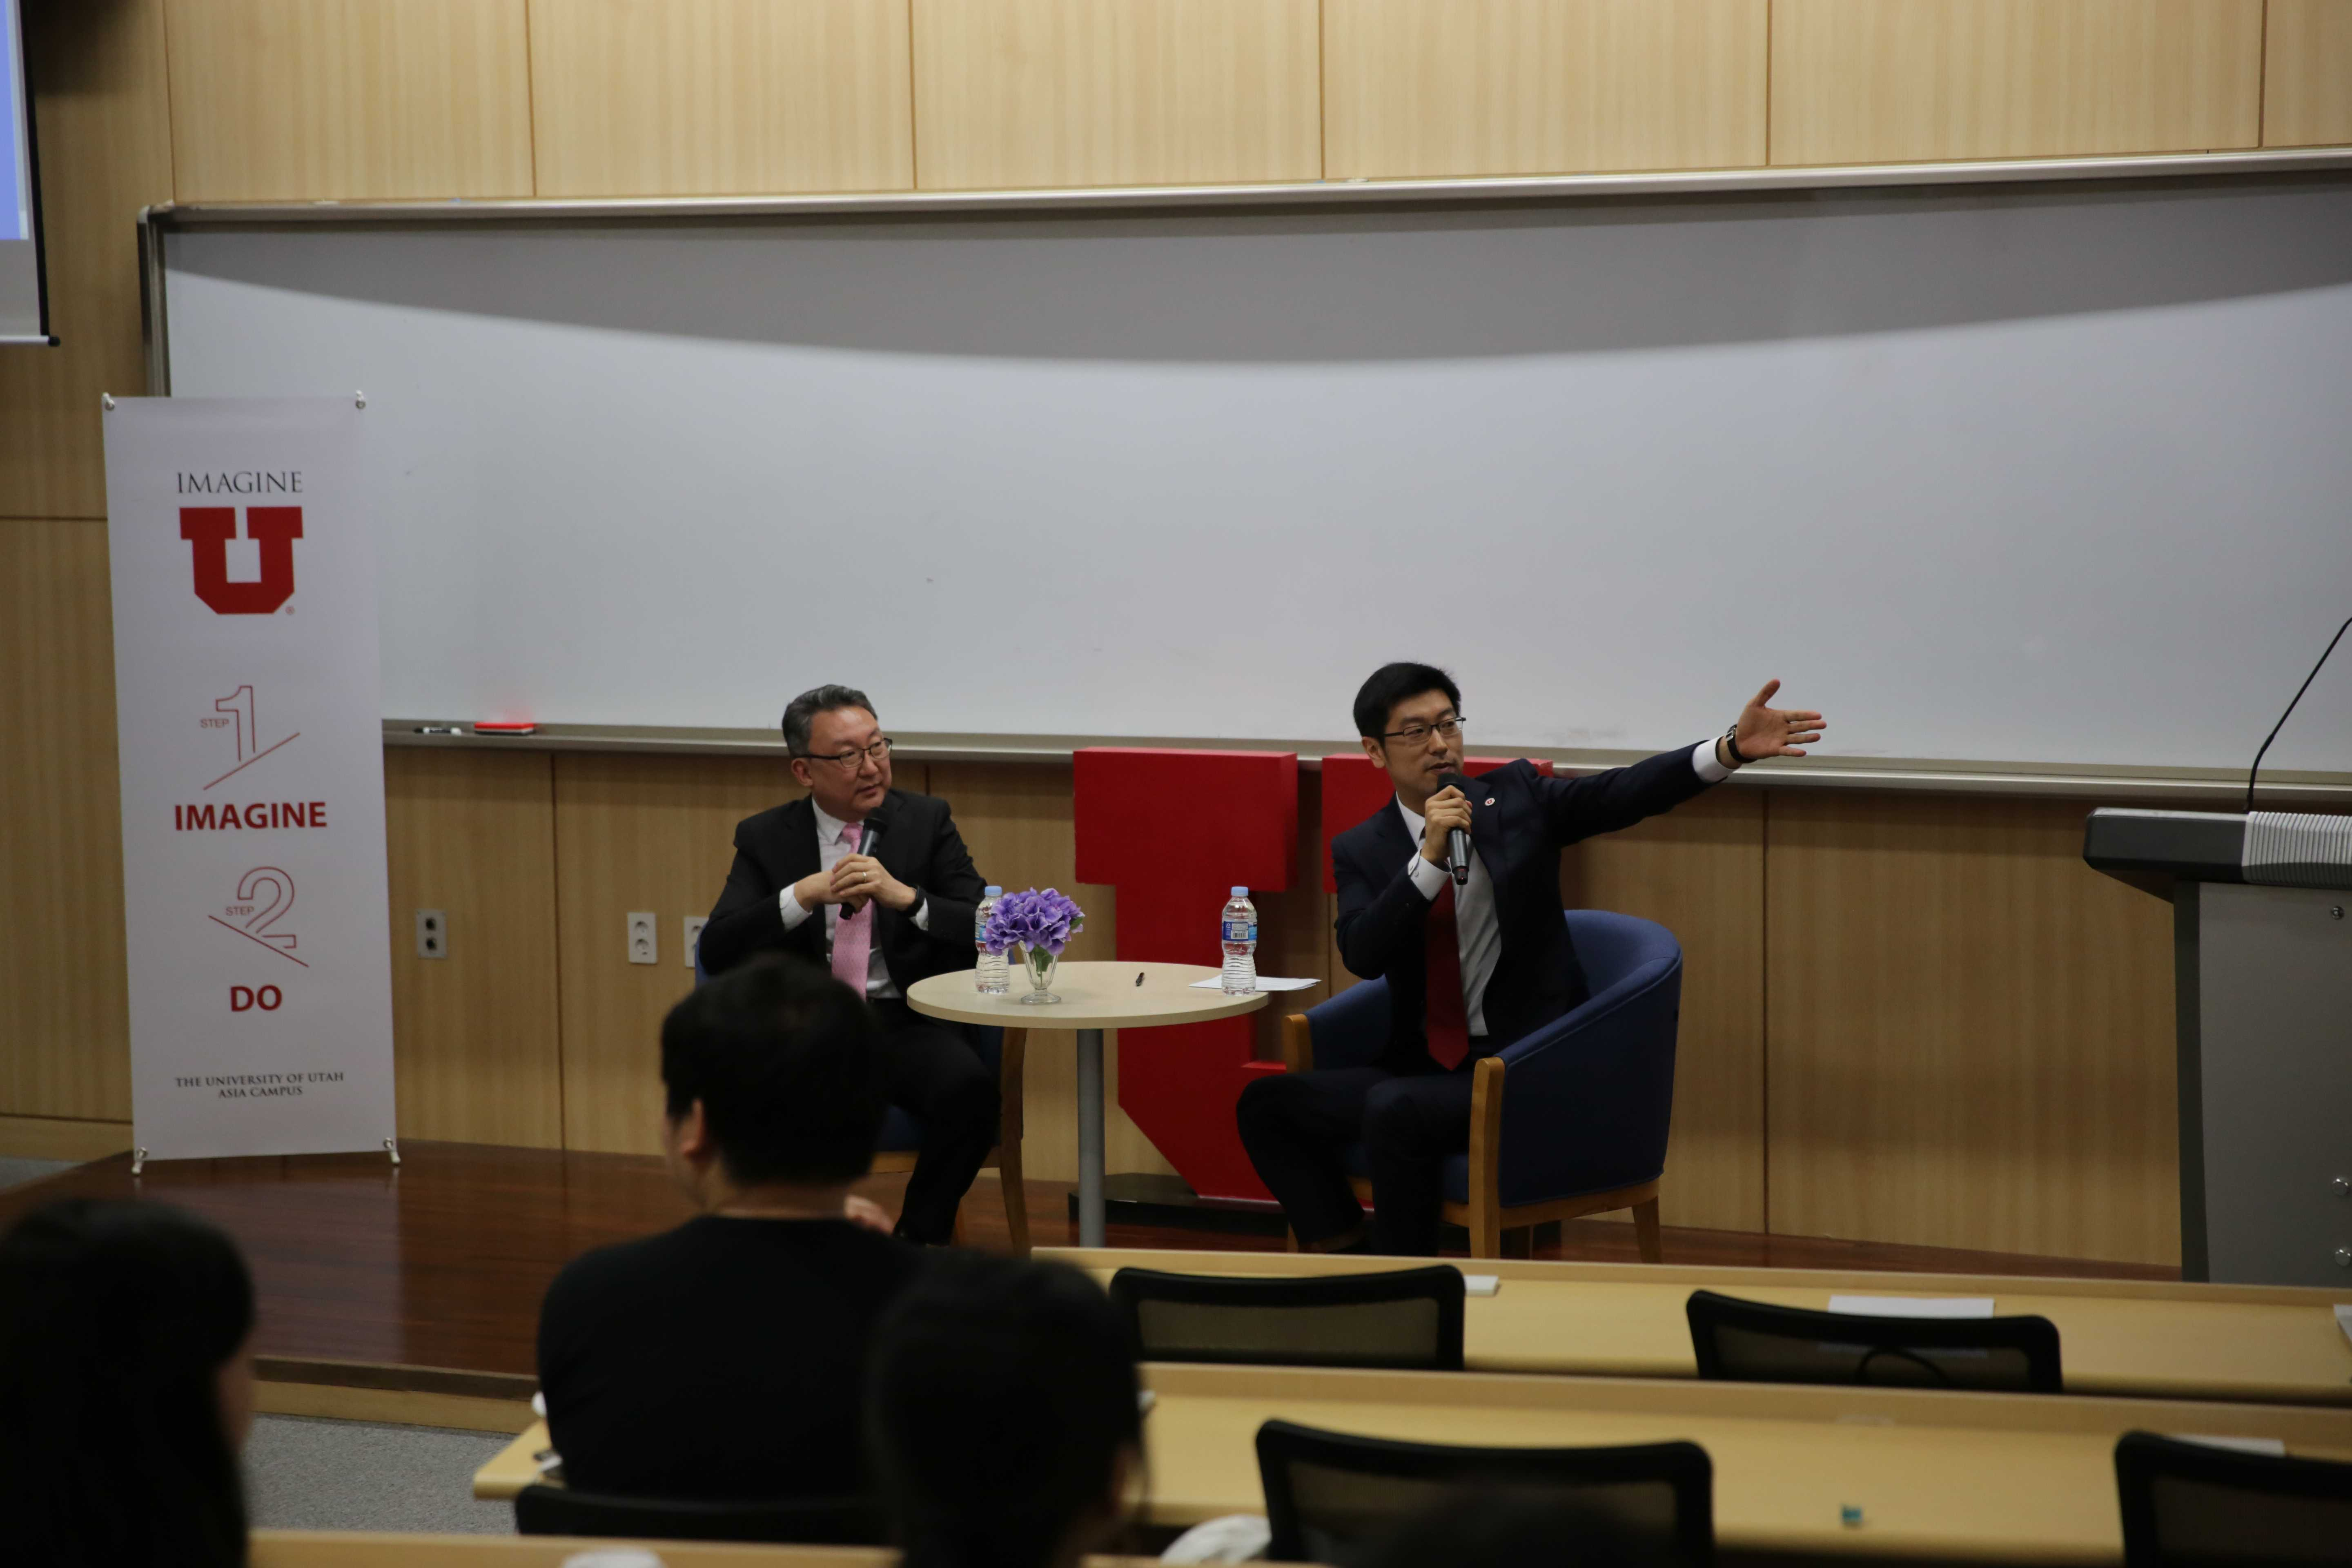 Peter Pae, Seoul Bureau Chief for Bloomberg, and John Kim, a president of the UAC student government, present the special lecture on April 19, 2019 at the University of Utah Asia Campus. (Photo by Mitch Shin | The Daily Utah Chronicle)